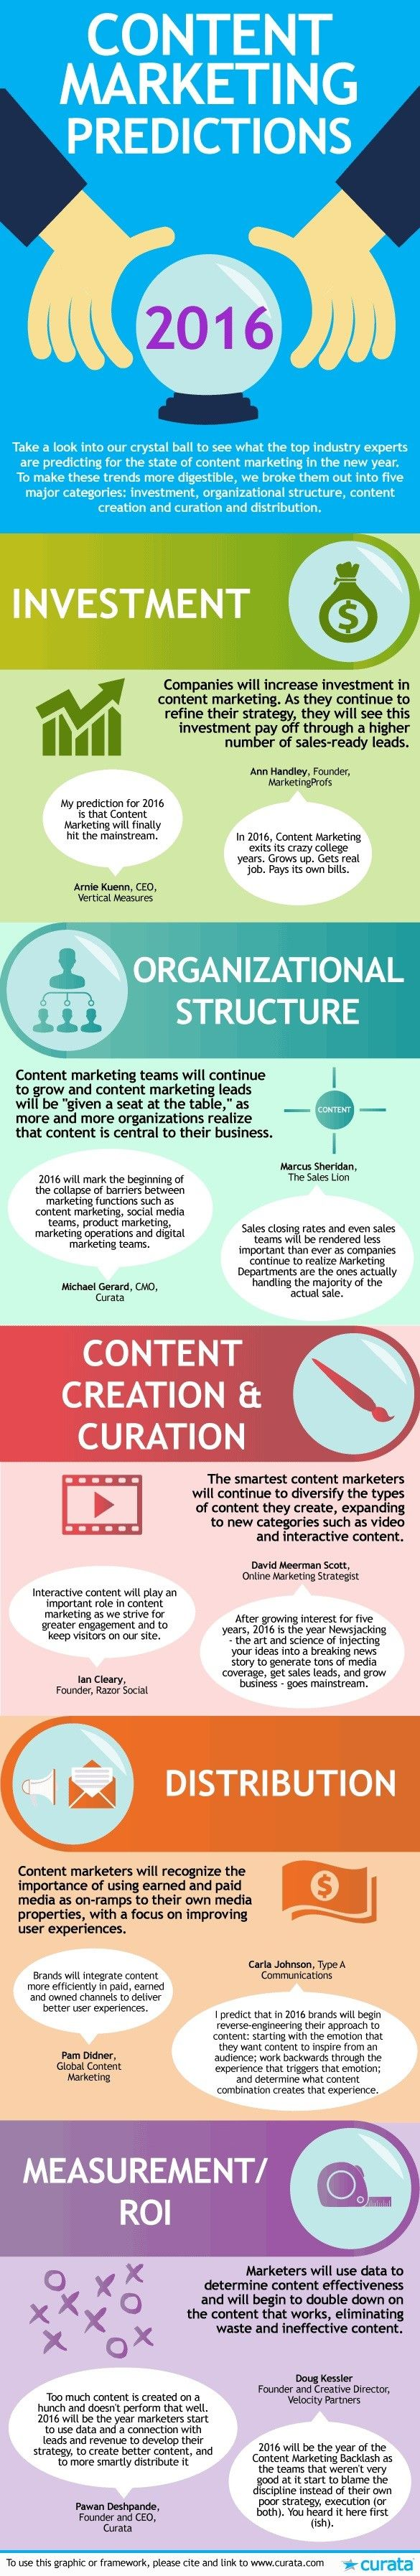 #Content #marketing predictions and #Investments